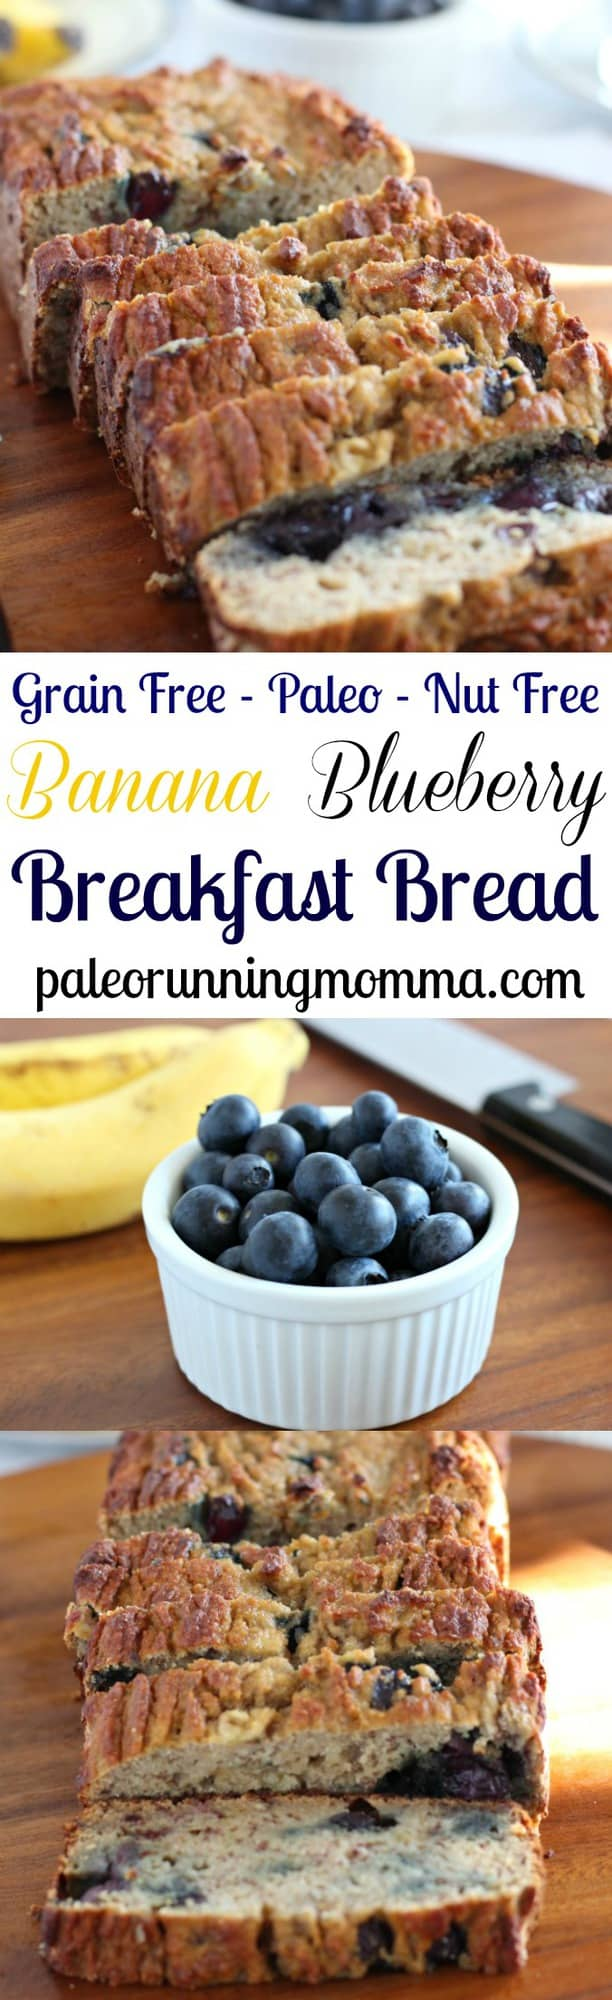 ... Blueberry Breakfast Bread that's #paleo and #nutfree! #grainfree